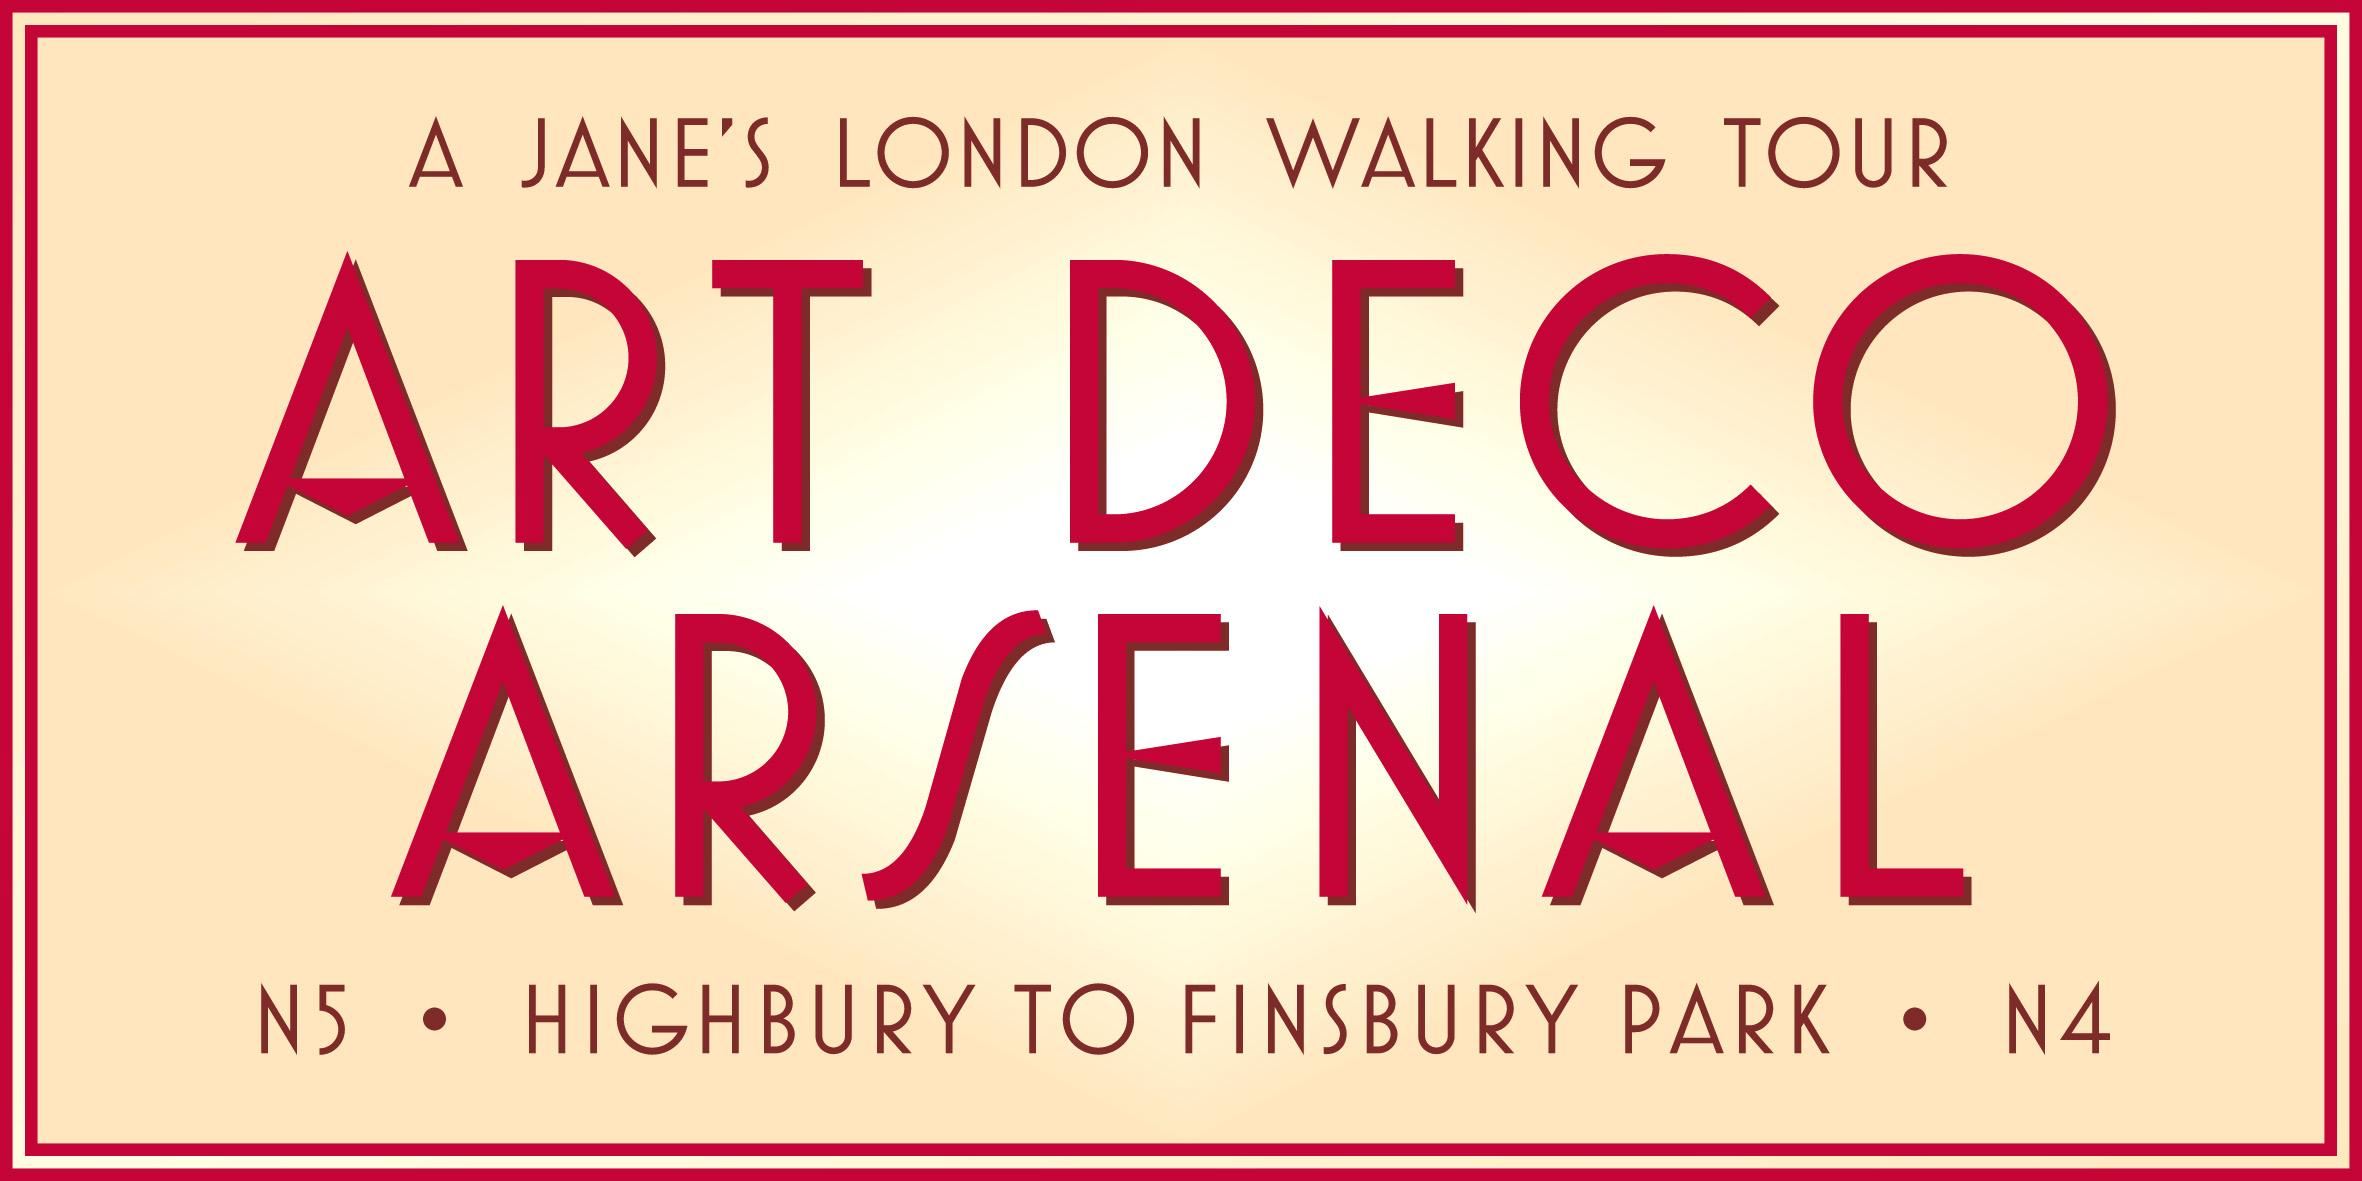 Art Deco Arsenal – a walking tour in North London